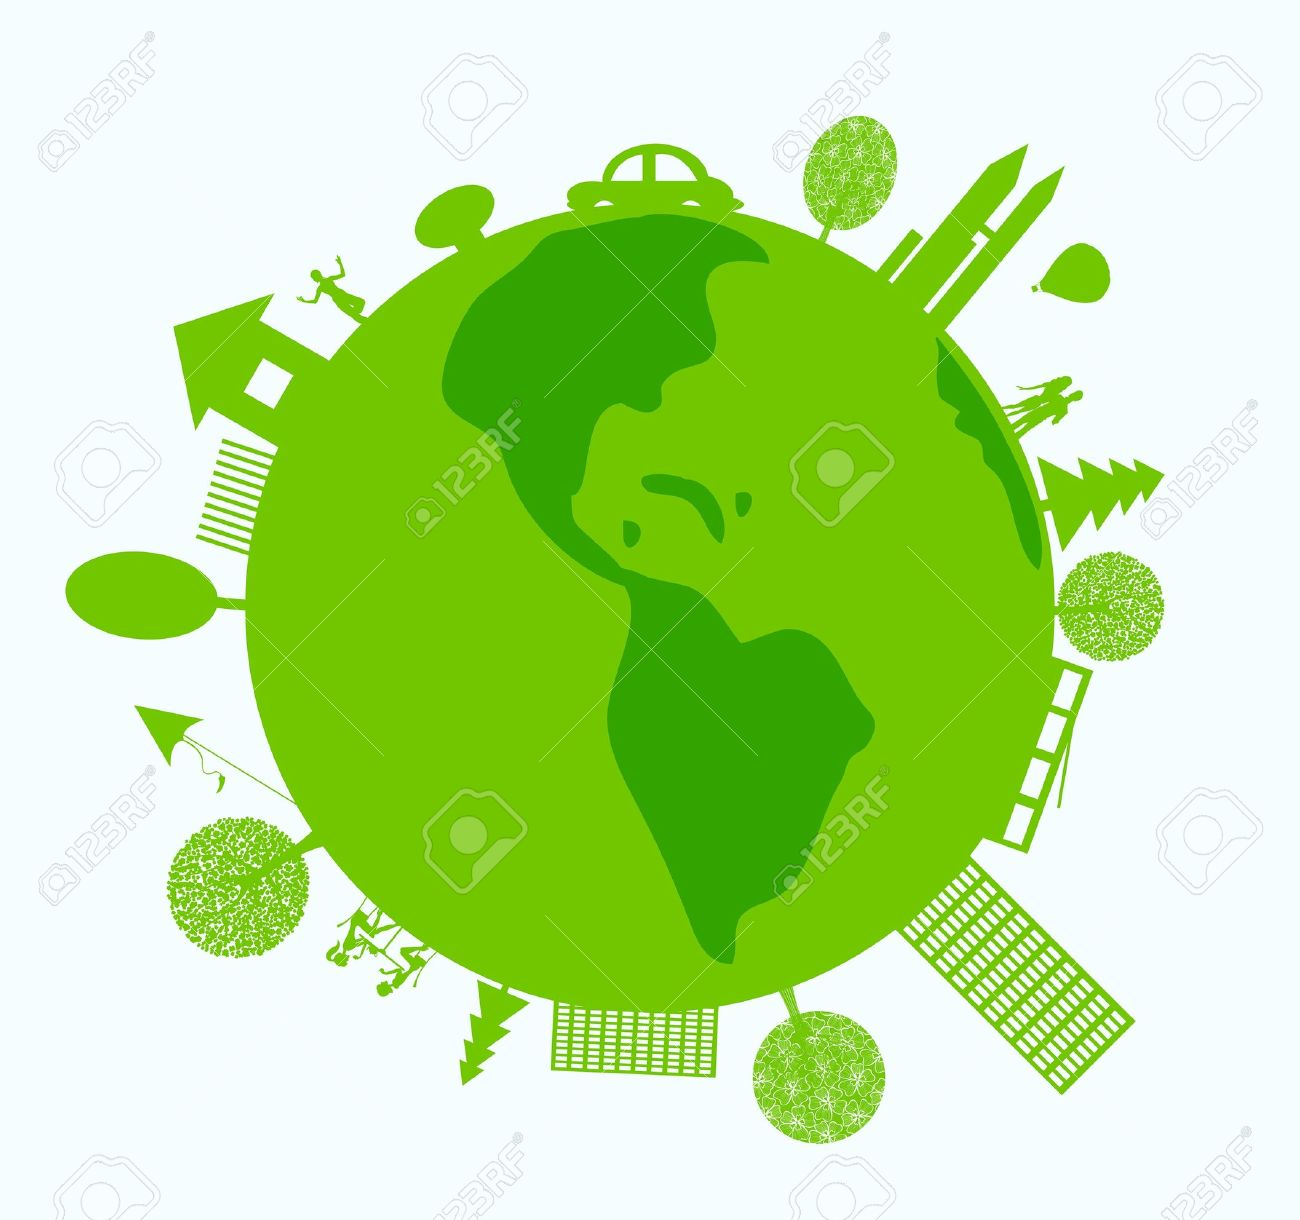 Green World With Eco Friendly Life Royalty Free Cliparts Vectors